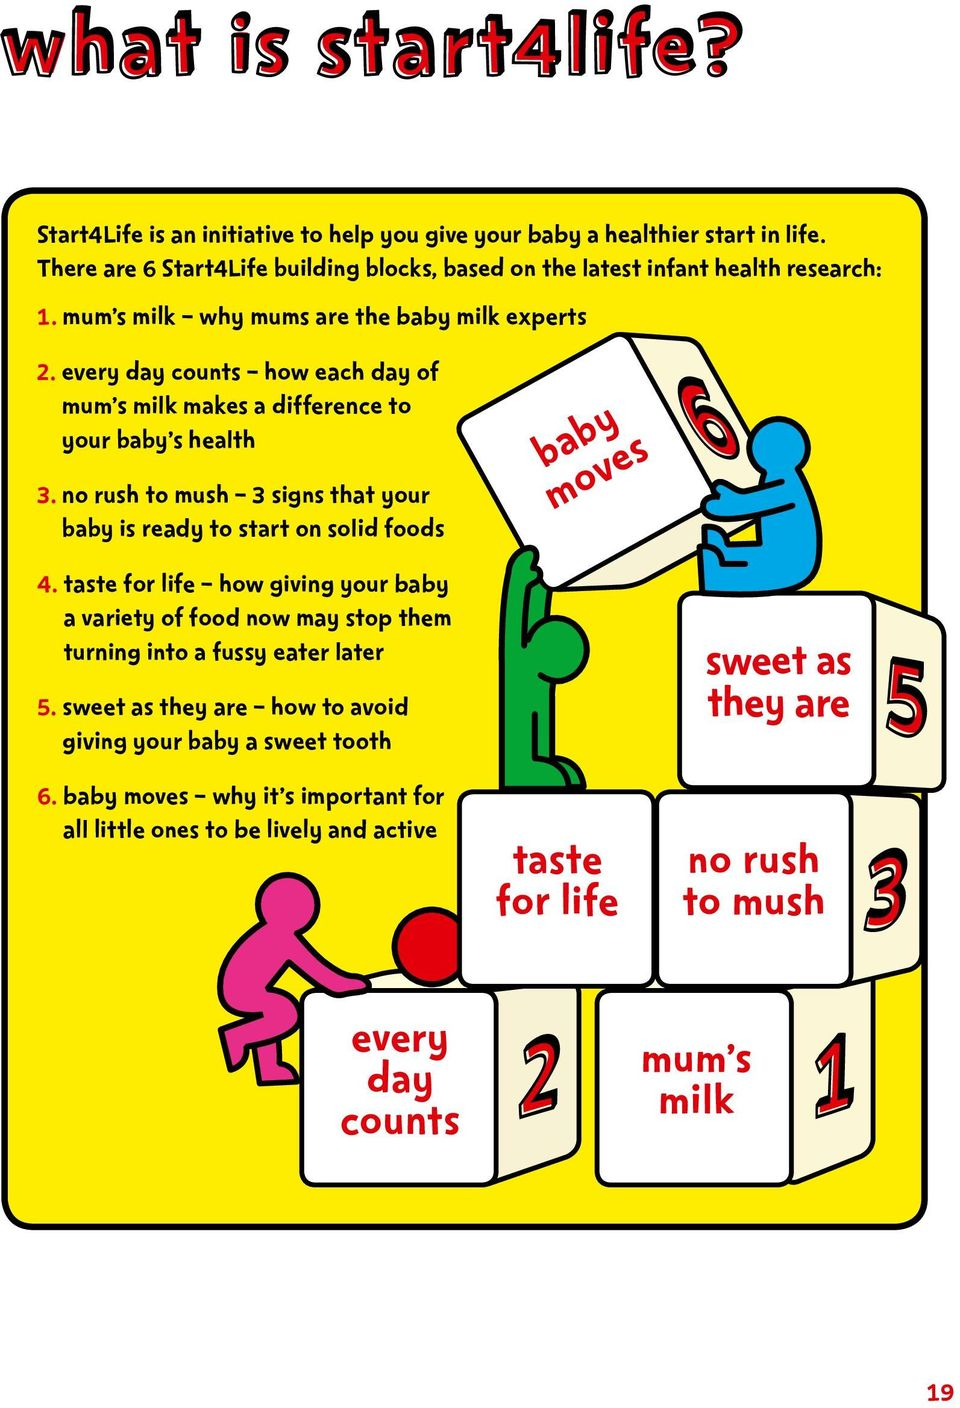 every day counts how each day of mum s milk makes a difference to your baby s health 3. no rush to mush 3 signs that your baby is ready to start on solid foods baby moves 4.